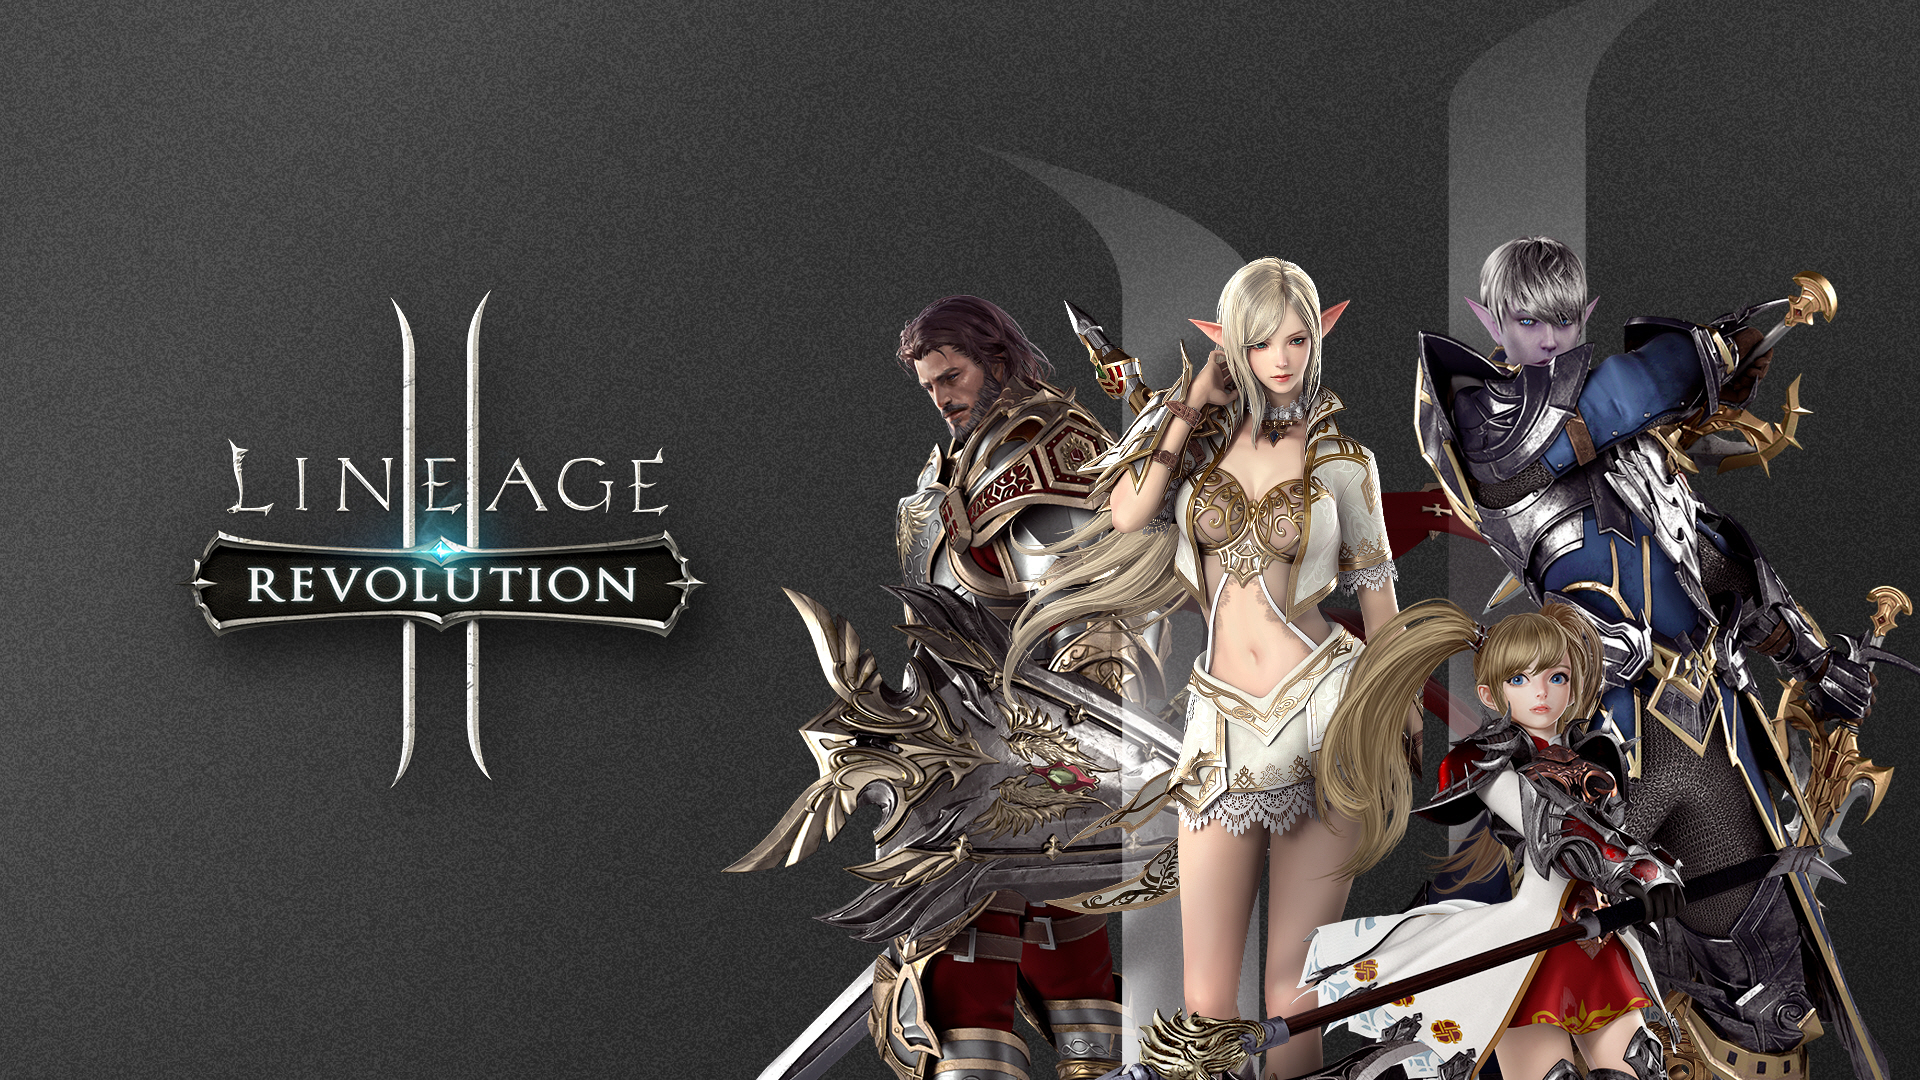 Lineage 2: Revolution's latest update celebrates the season of spring with some all-new events